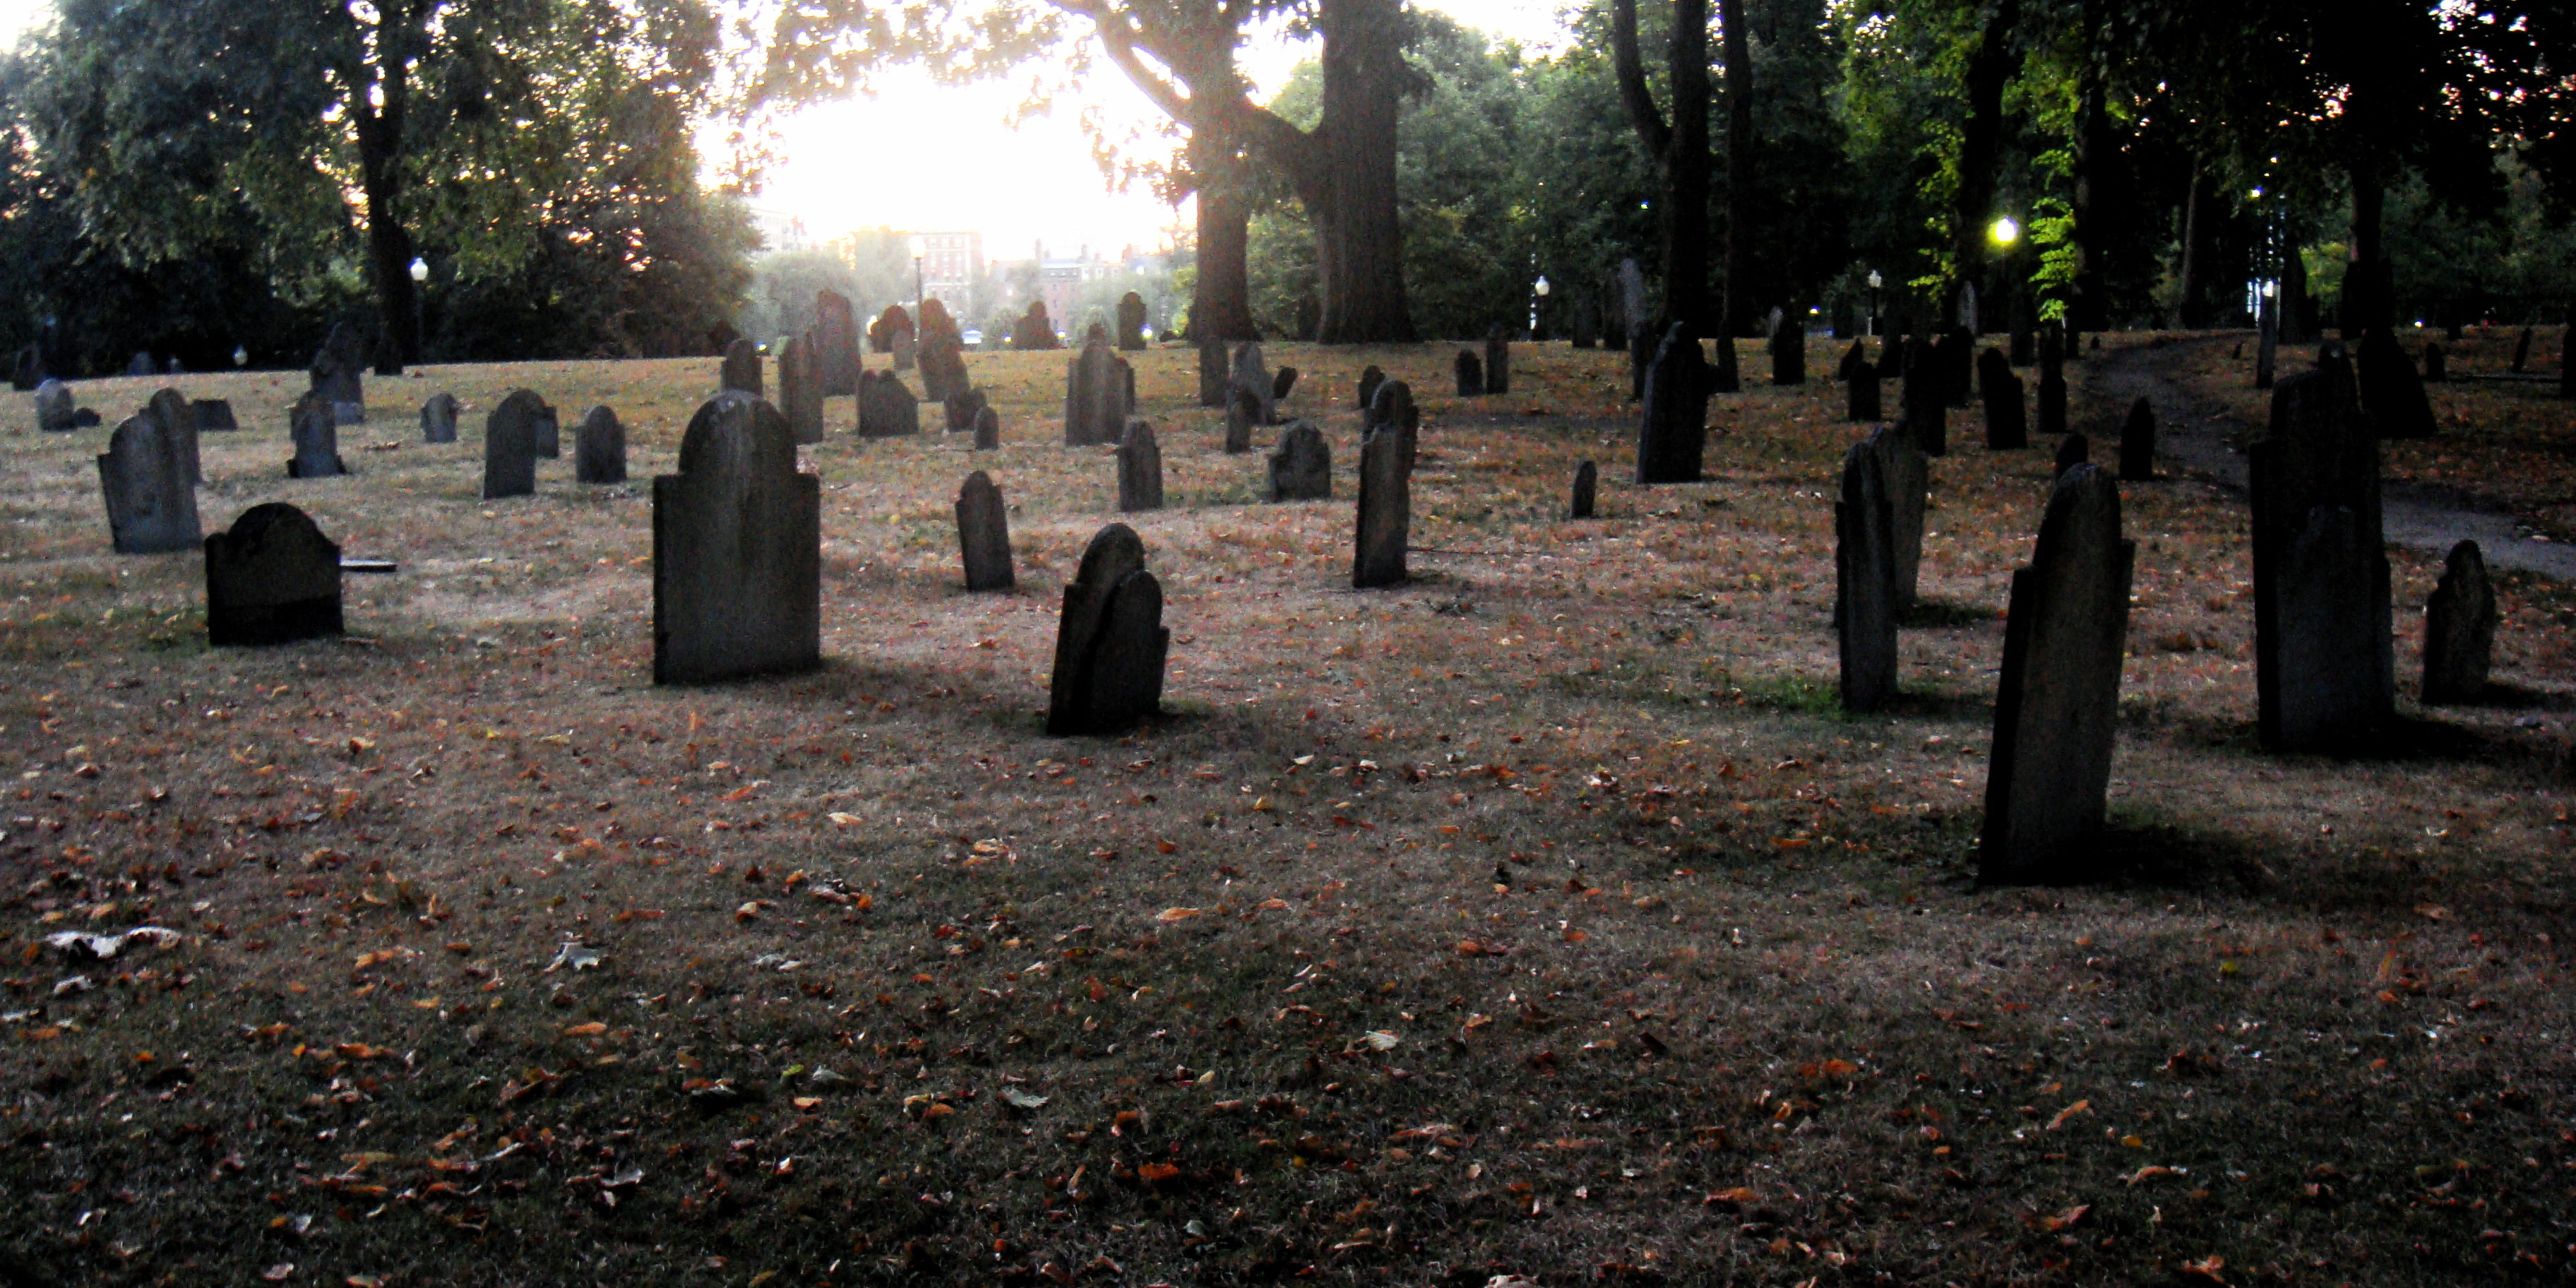 cemetery by amy gizienski on flickr